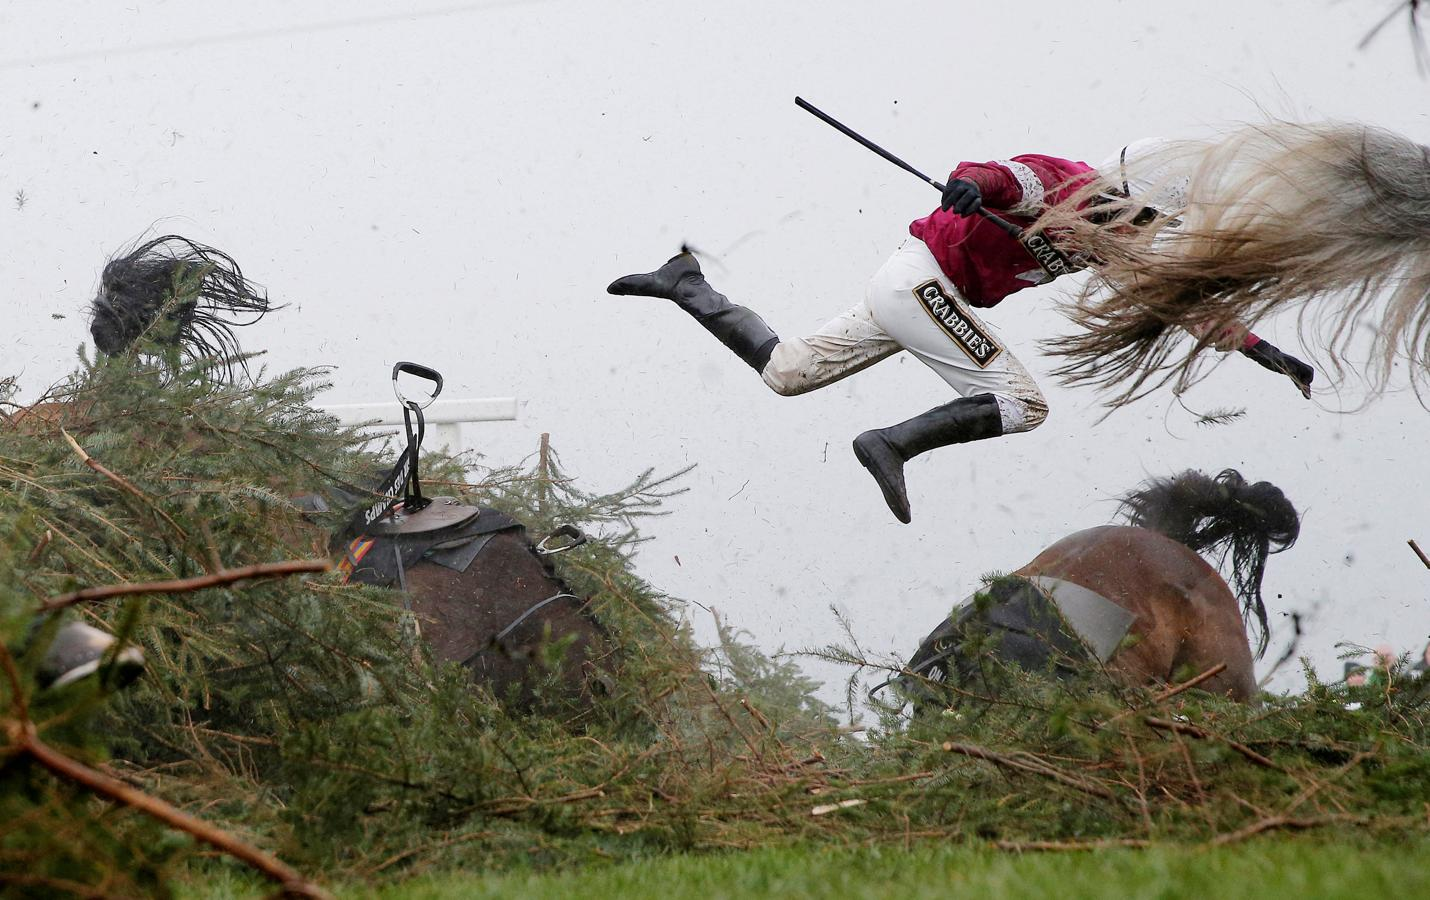 1er premio individual. «Grand National Steeplechase», de Tom Jenkins (The Guardian)